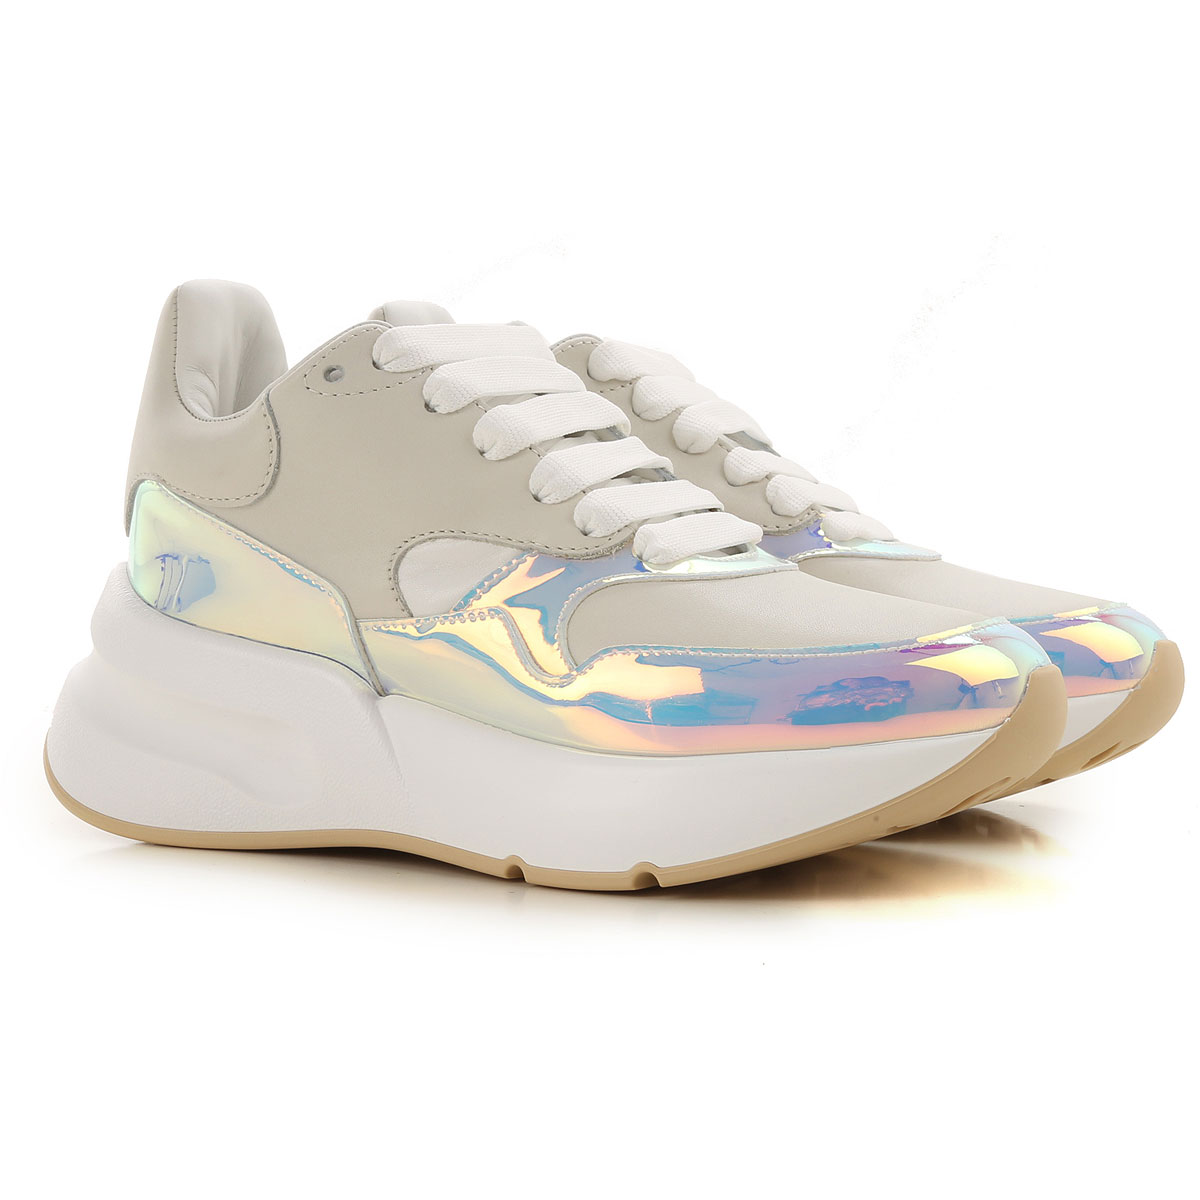 Alexander McQueen Sneakers for Women On Sale, Cream, Leather, 2017, 2.5 3.5 4.5 5.5 6.5 7.5 8.5